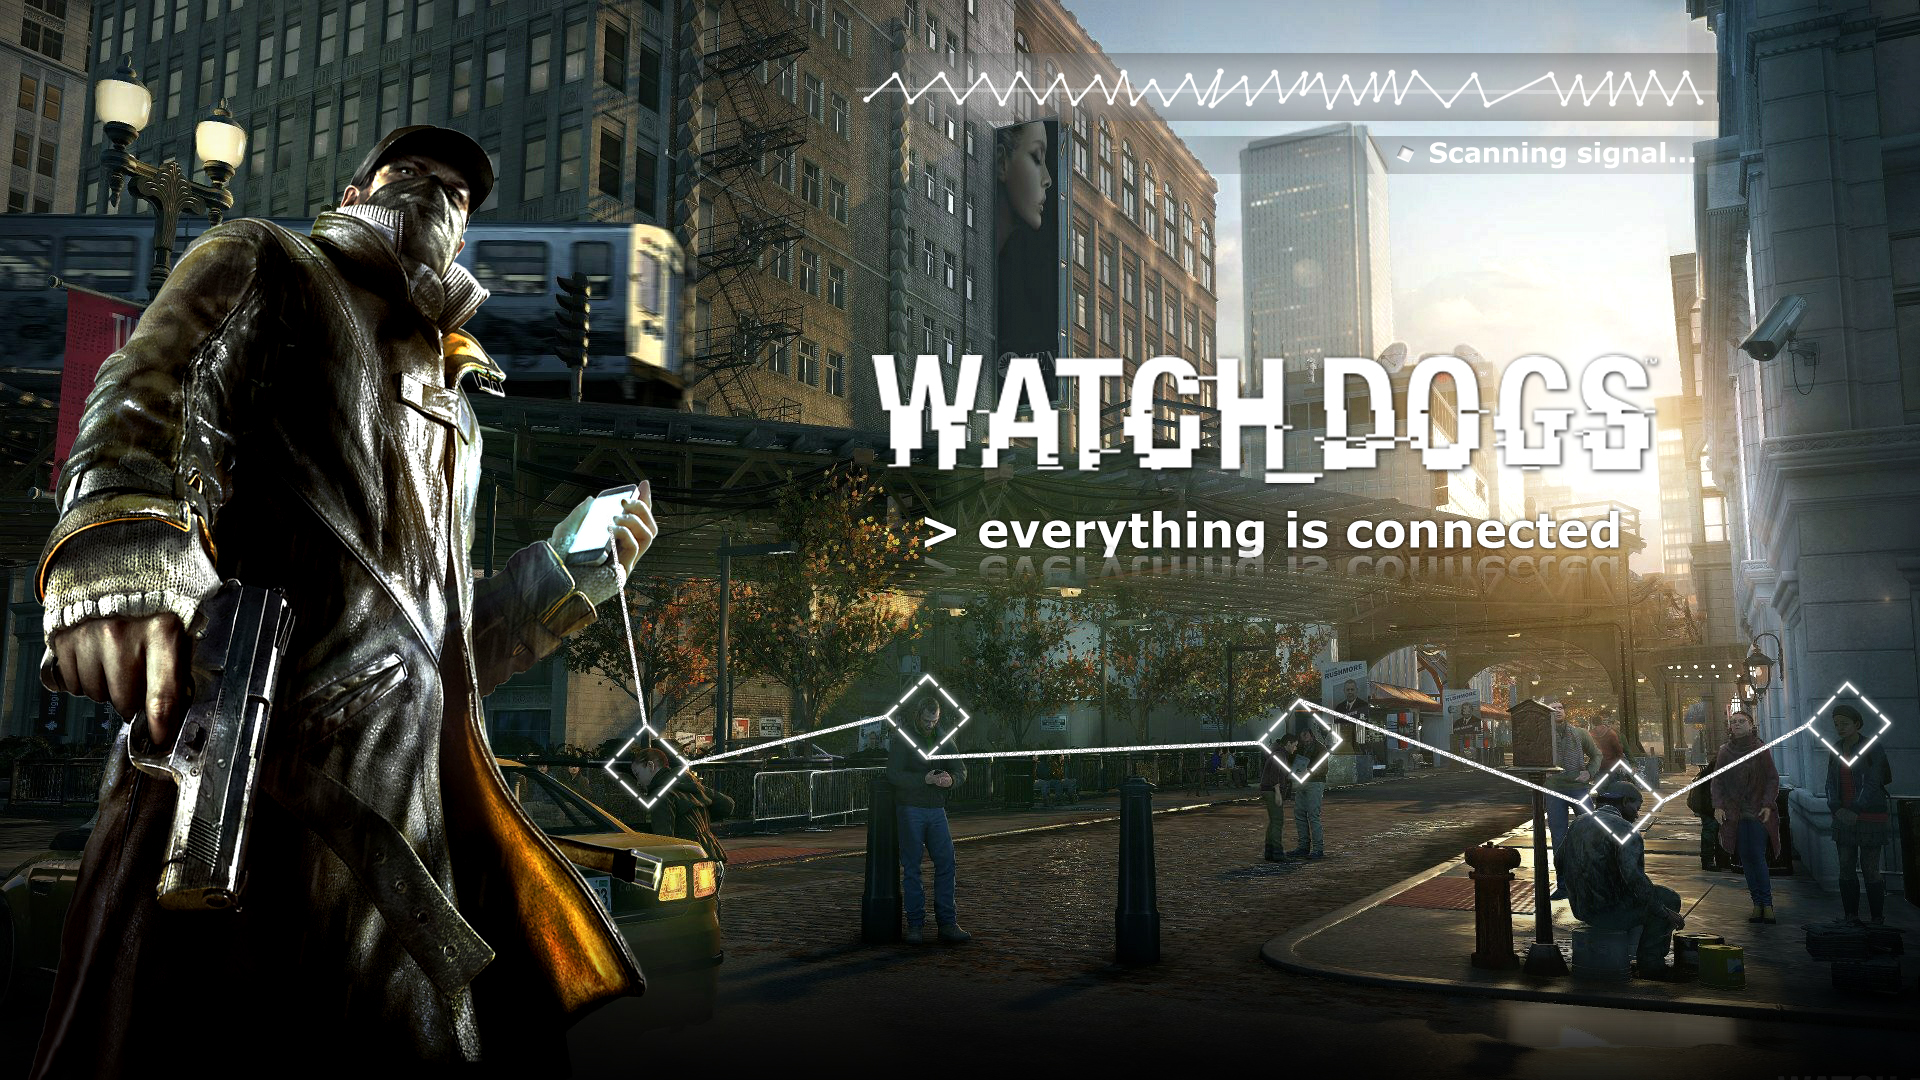 Watch dogs wallpaper hd